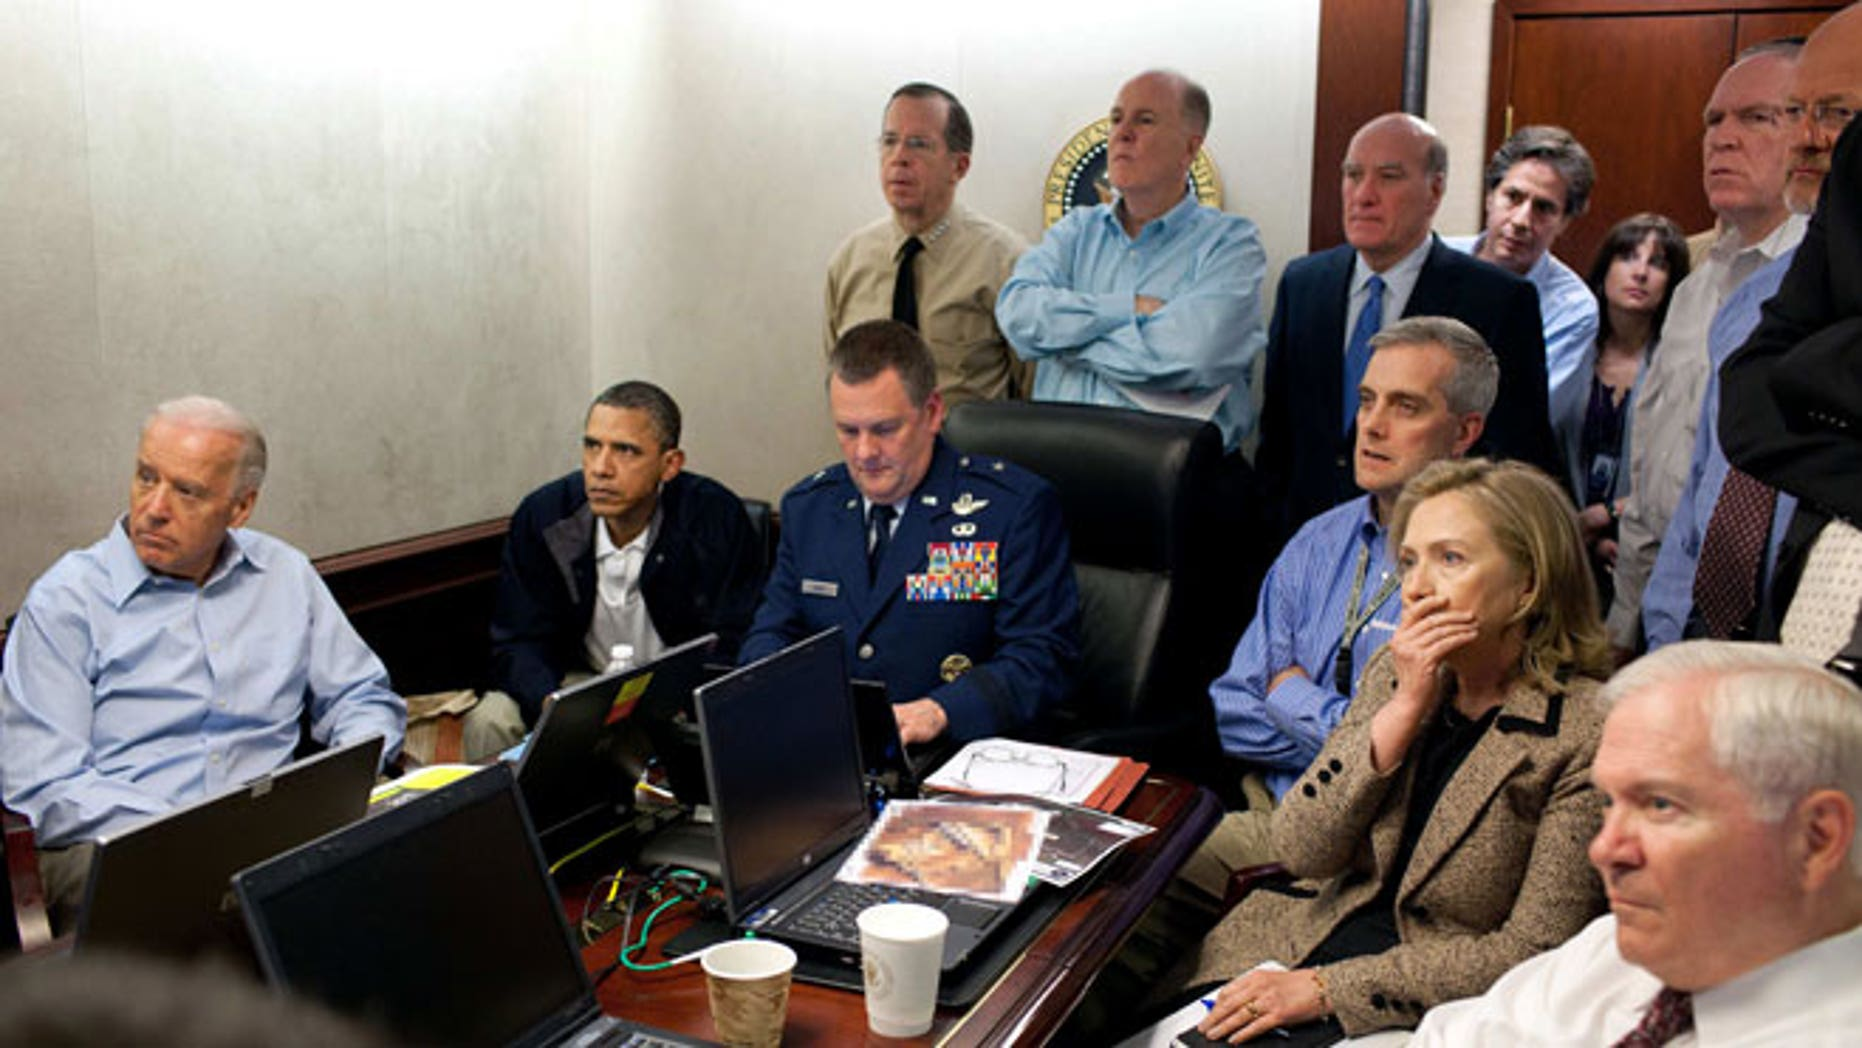 In this May 1, 2011 image released by the White House and digitally altered by the source to obscure the details of a document on the table, President Barack Obama, second from left, Vice President Joe Biden, left, Secretary of Defense Robert Gates, right, Secretary of State Hillary Rodham Clinton, second right, and members of the national security team watch an update on the mission against Usama bin Laden in the Situation Room of the White House in Washington.